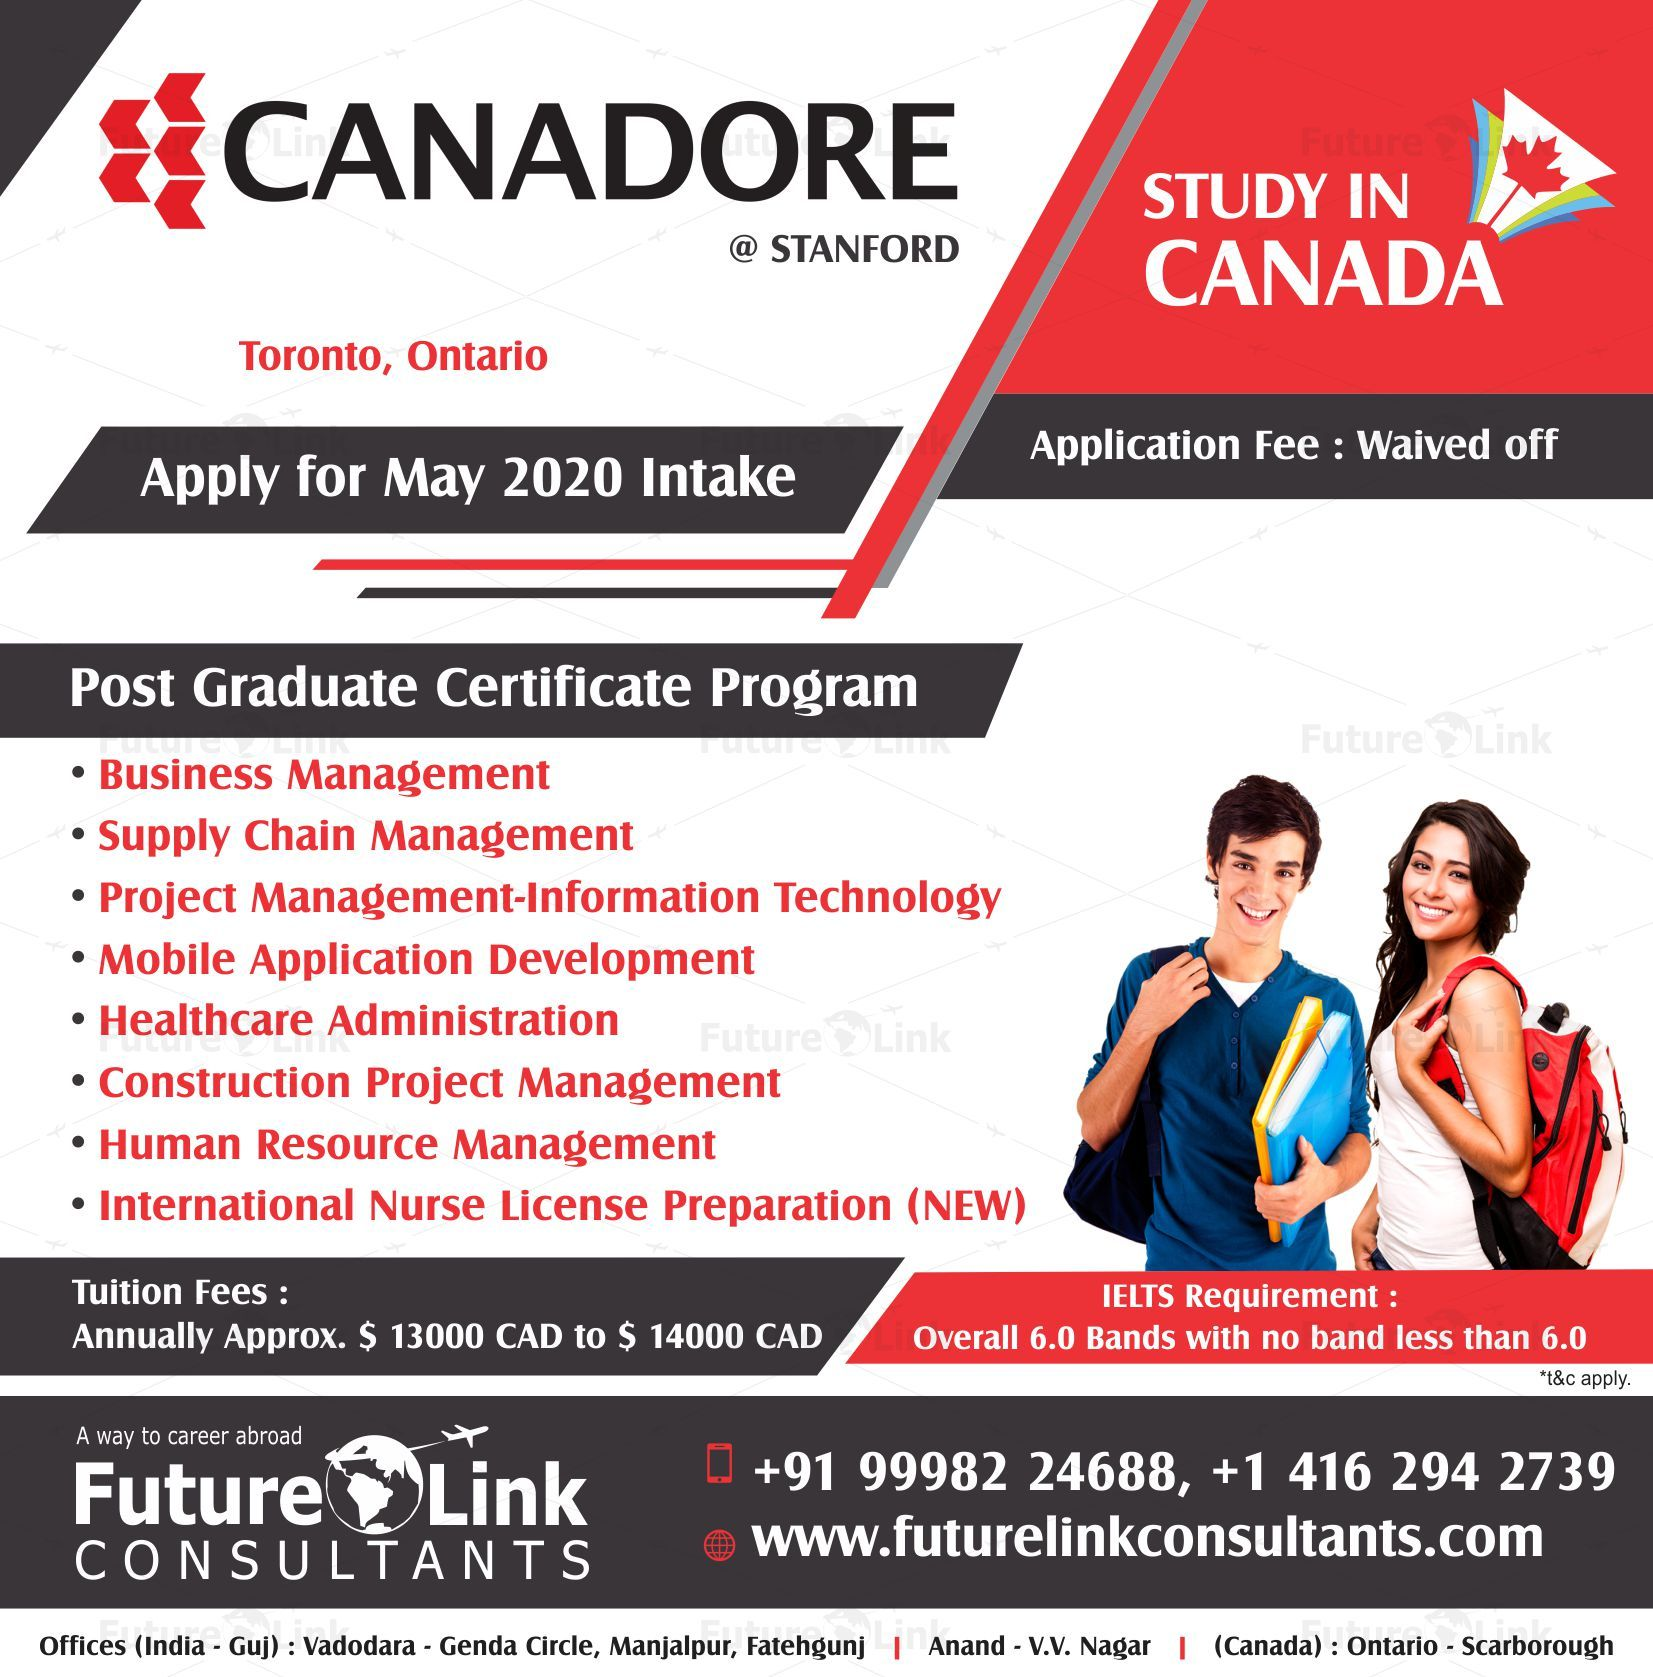 Study In Canada At Canadore College Toronto Ontario And Open Doors For Opportunities Healthcare Administration Nursing Study Nursing License